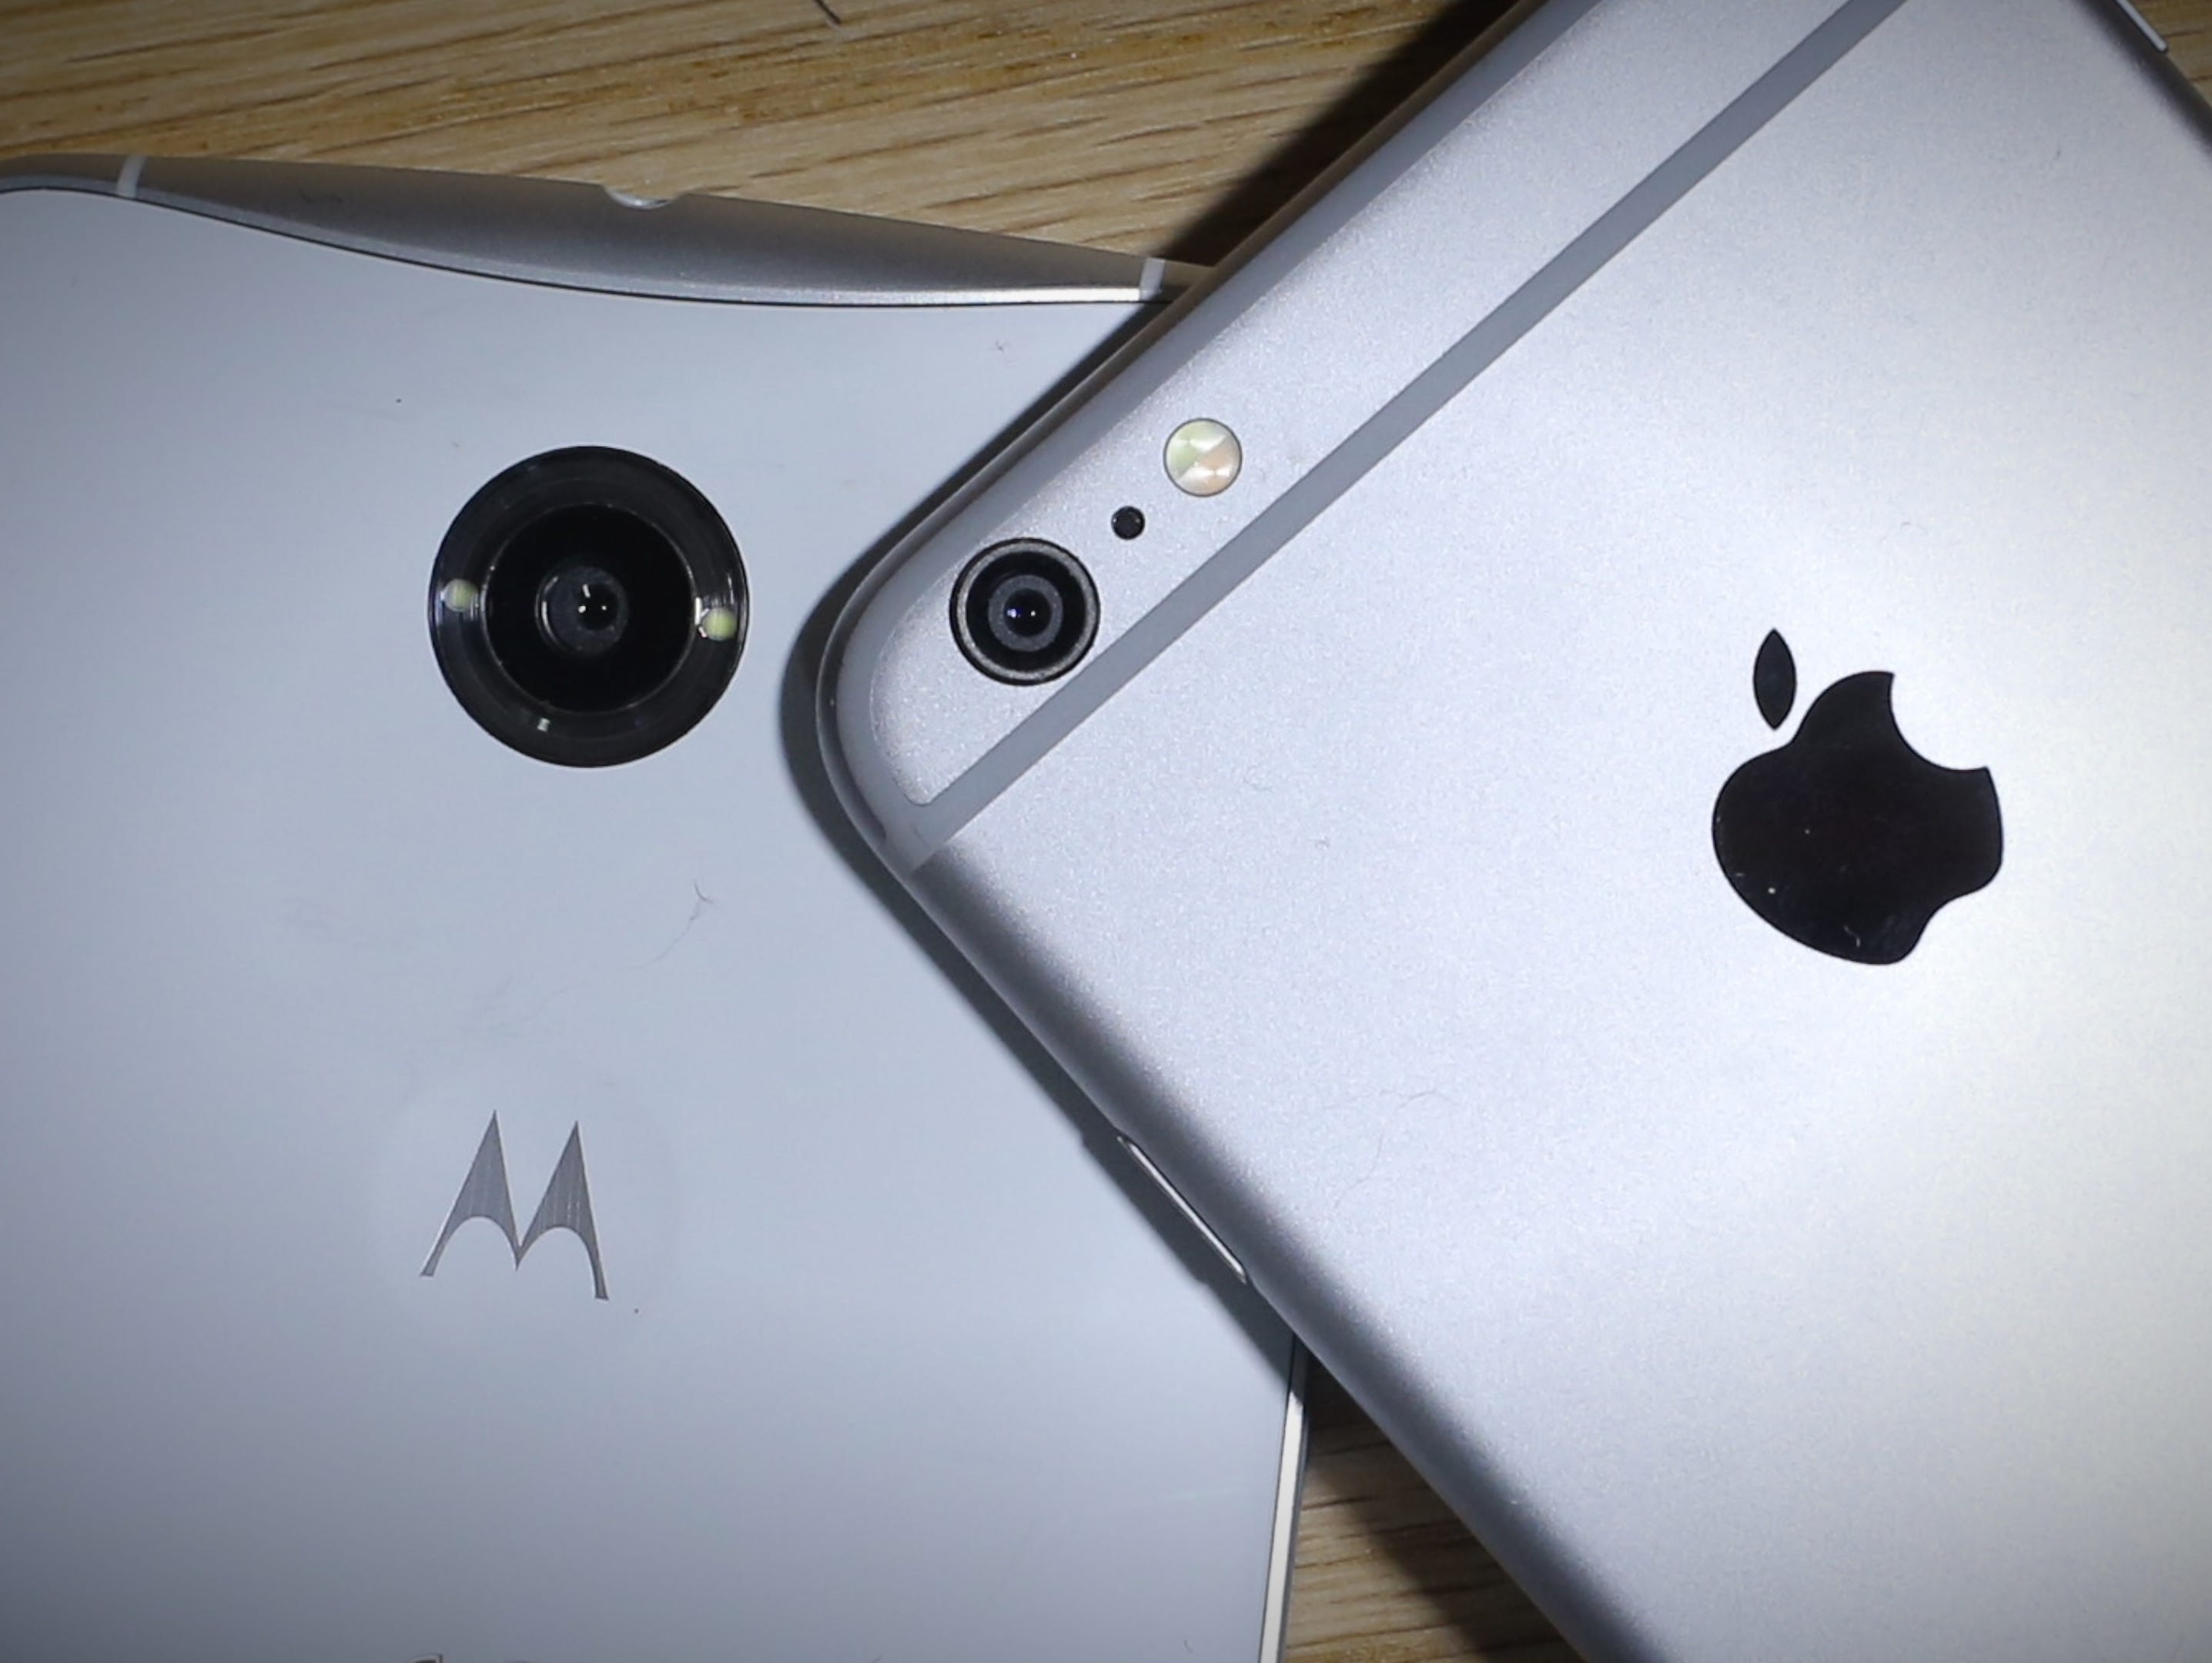 The back views of the Google Nexus 6 (made by Motorola) and the Apple iPhone 6 Plus.